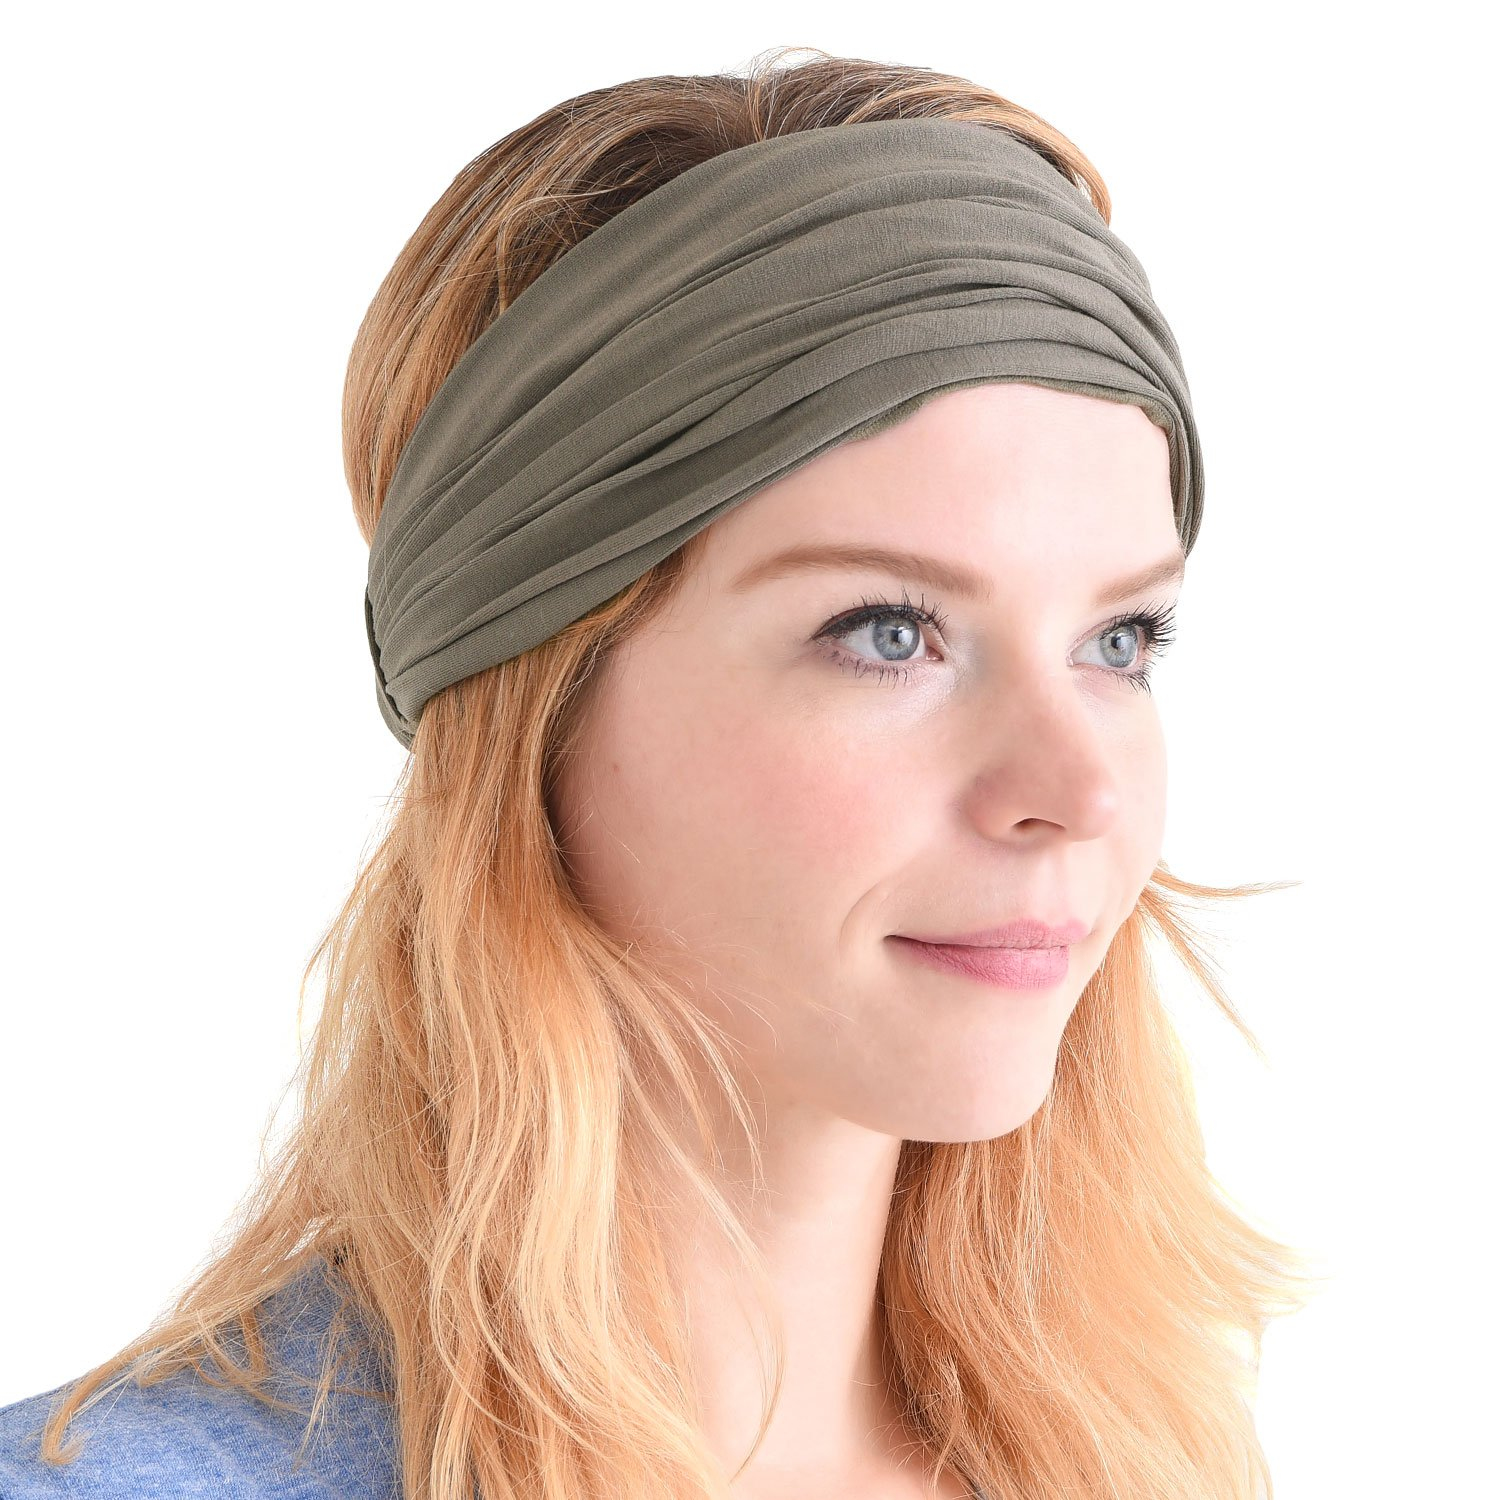 Charcoal Gray Japanese Bandana Headbands for Men and Women – Comfortable Head Bands with Elastic Secure Snug Fit Ideal Runners Fitness Sports Football Tennis Stylish Lightweight M by CCHARM (Image #1)